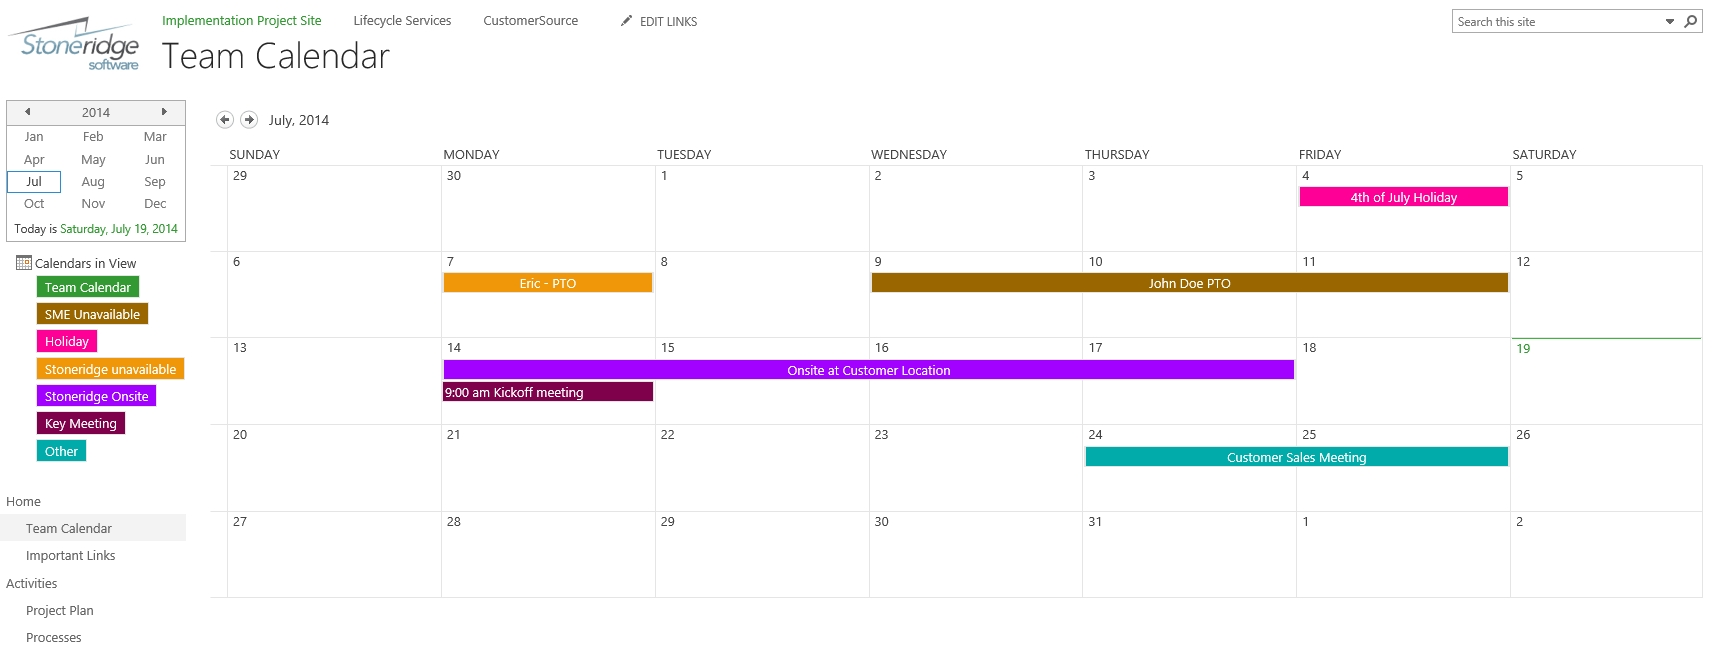 Creating A Color Coded Calendar In Sharepoint Online within Sharepoint 2013 Calendar Overlay Duplicate